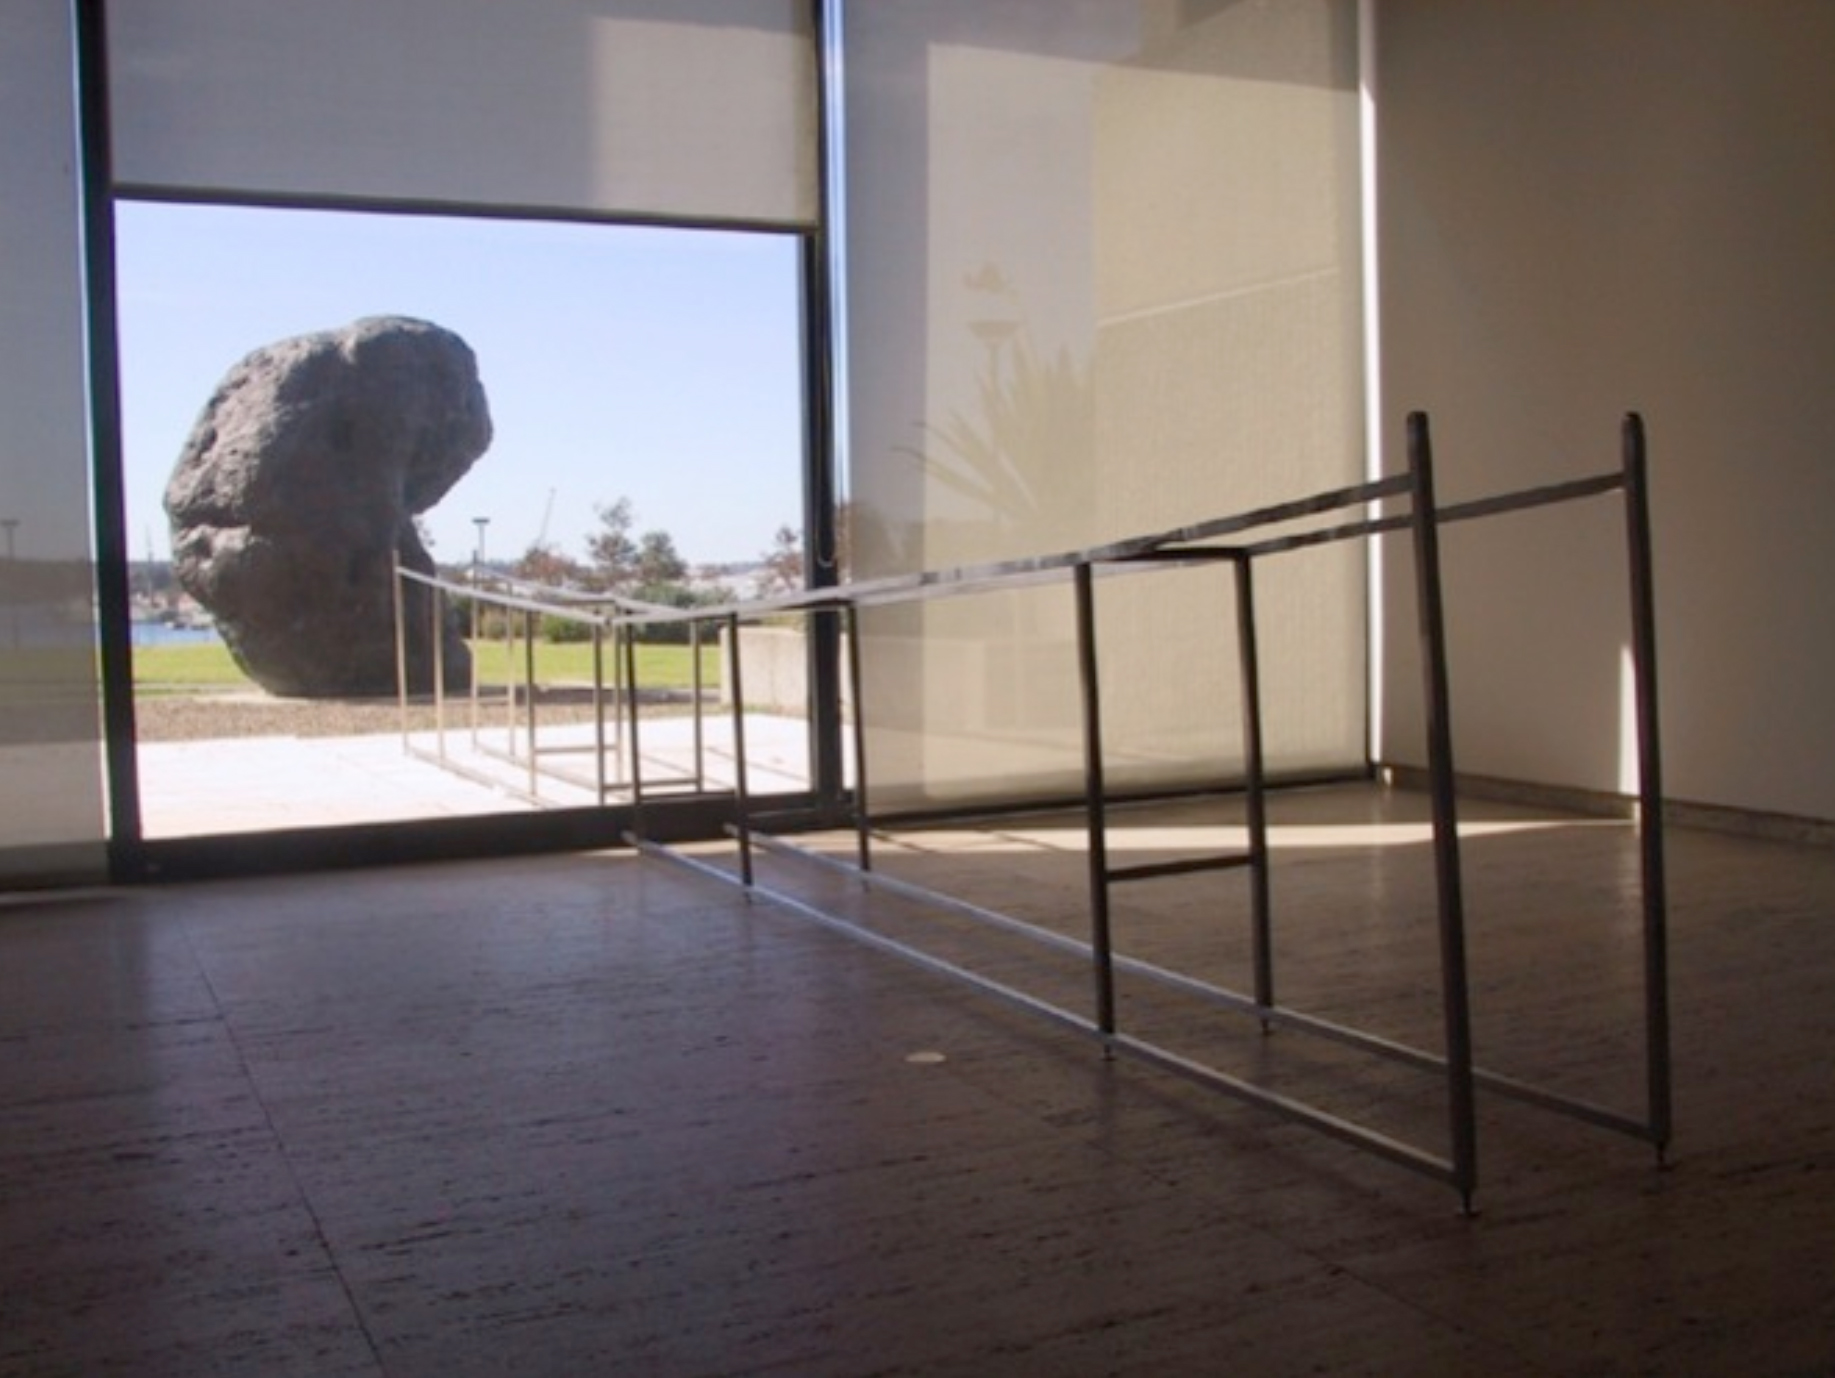 'AGNSW Lower Gallery interior/exterior'; cast steel, steel frame, dimensions variable